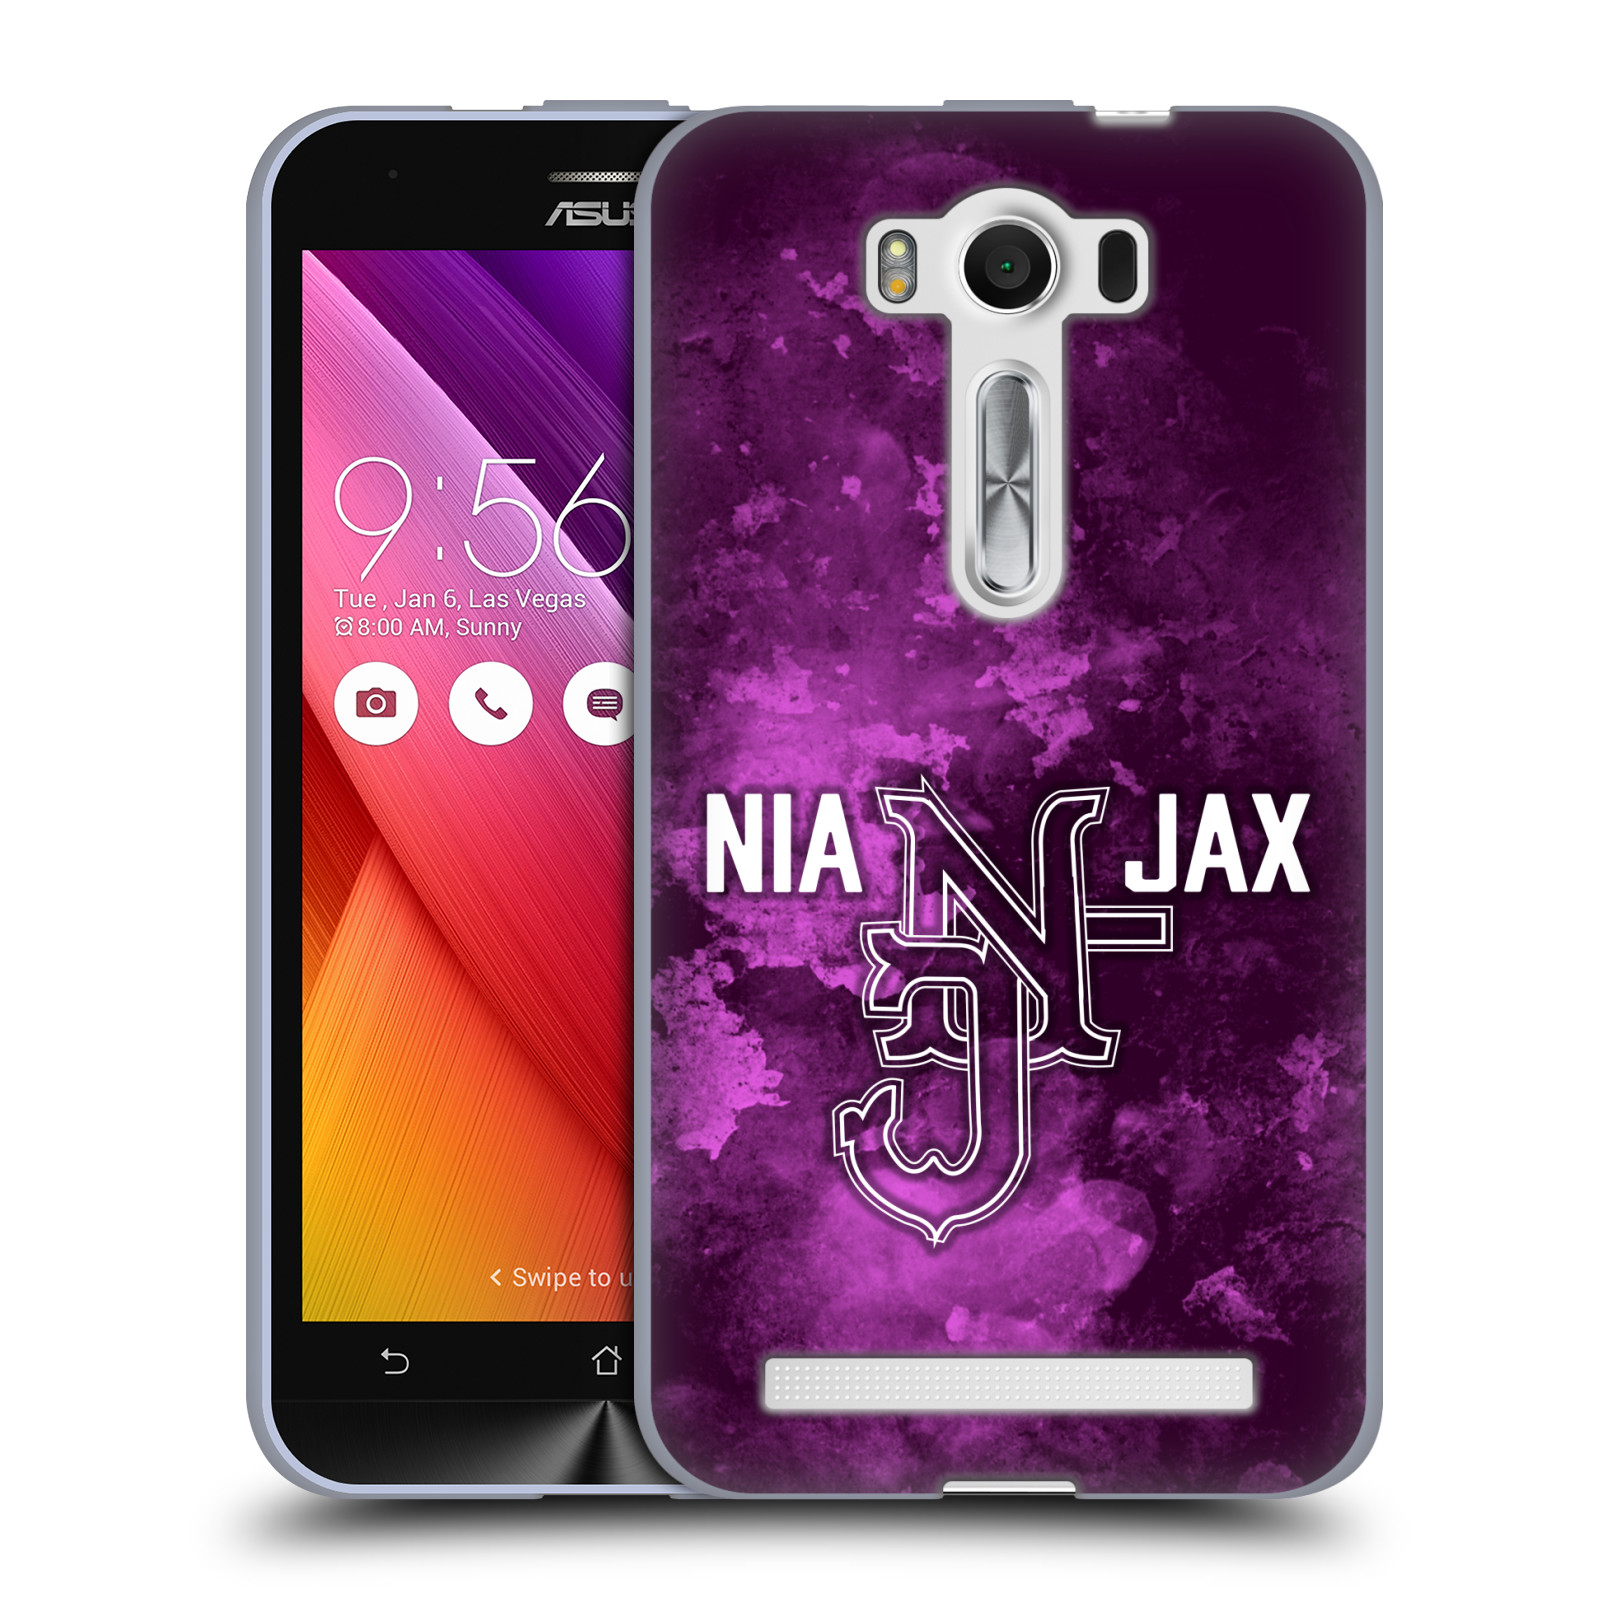 OFFICIAL WWE NIA JAX SOFT GEL CASE FOR ASUS ZENFONE PHONES